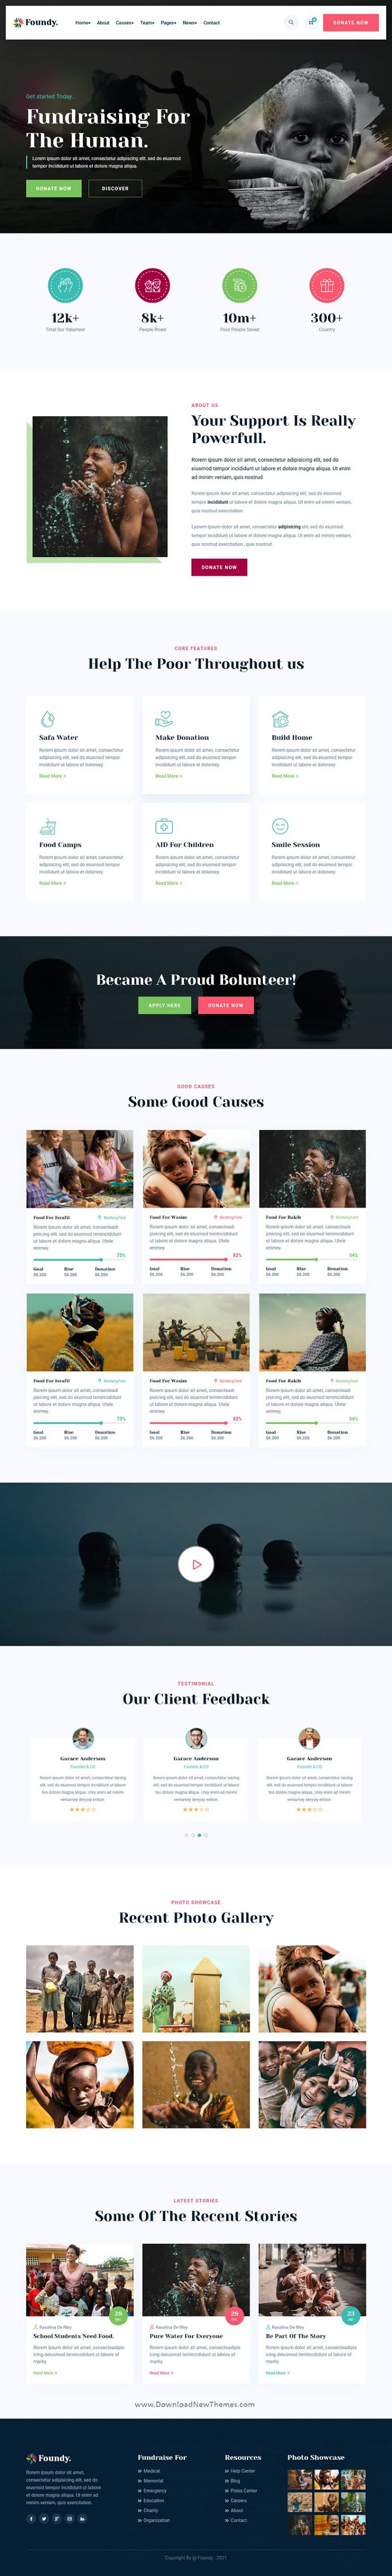 Nonprofit Charity Bootstrap Template